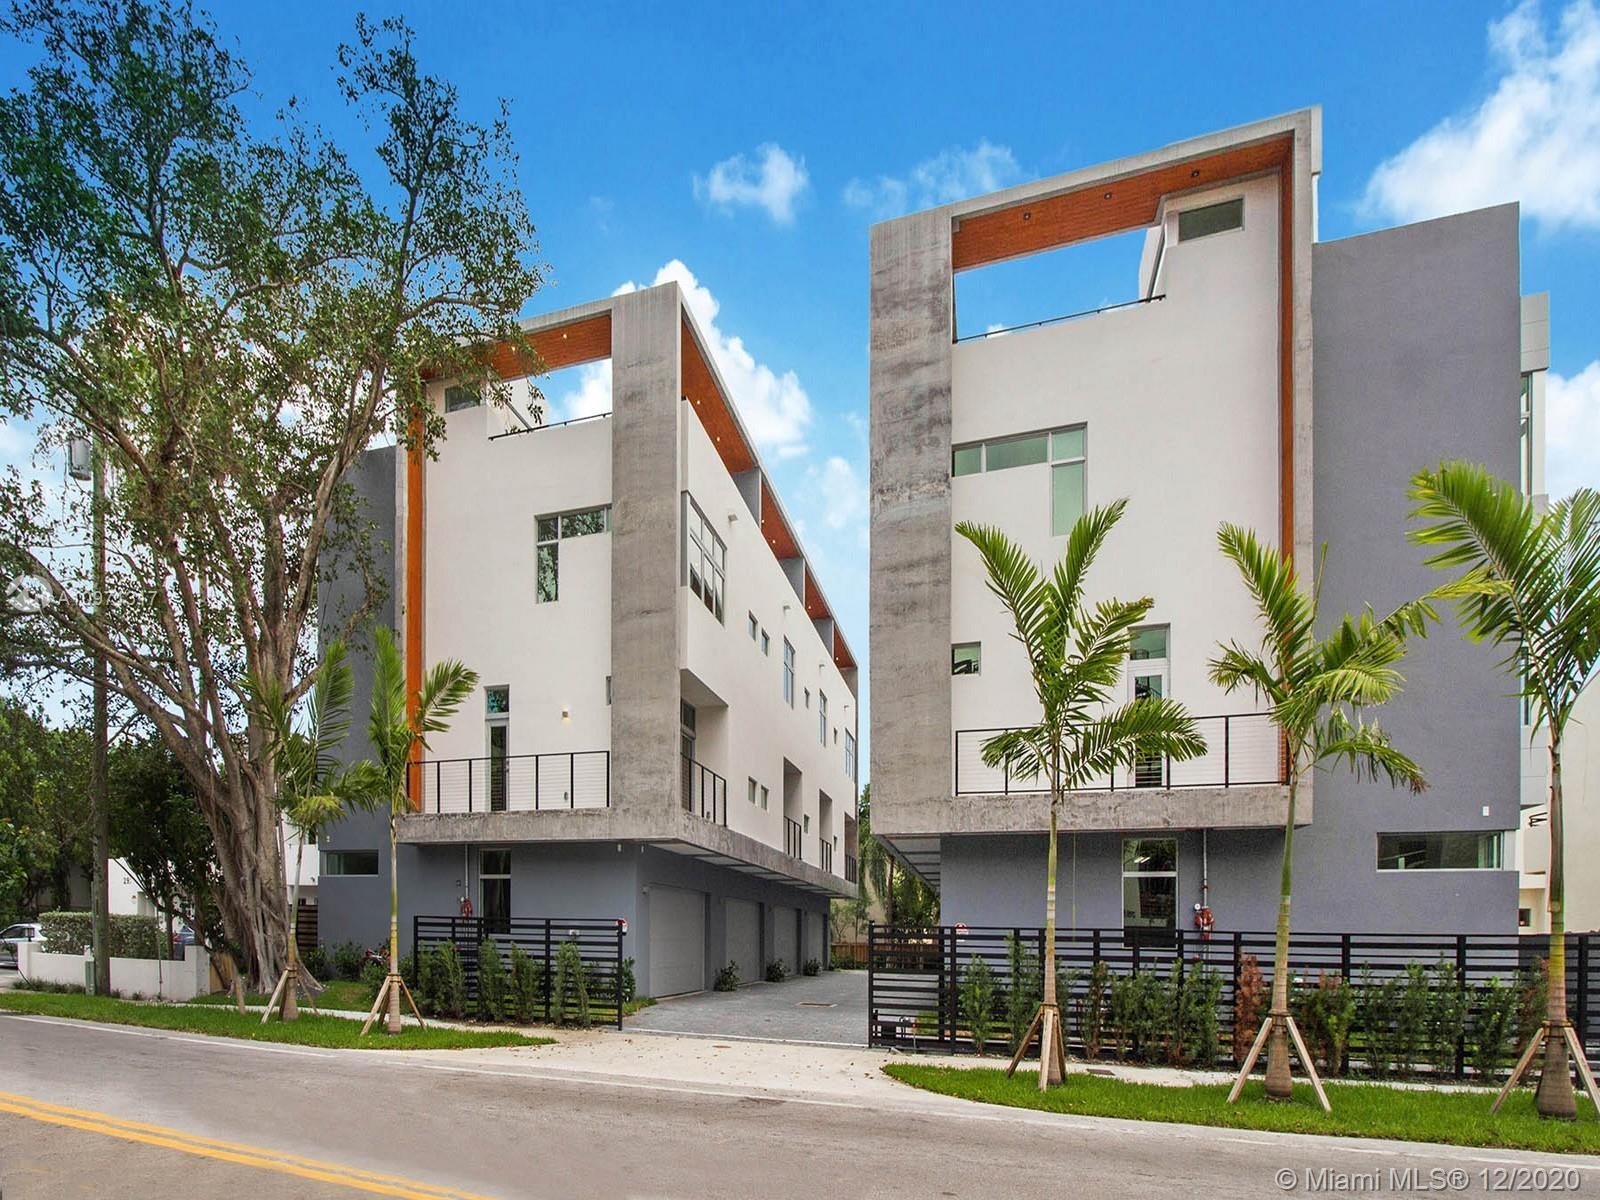 Brand new construction now ready for immediate occupancy in the heart of Coconut Grove. This 3-bedroom, 3 full bathroom townhome is complete with all impact glass and a 2-car garage. HABITAT AT THE GROVE is a brand-new boutique community with 8 hip urban townhouses. Two different floor plan options all with Bosch appliances and custom modern finishes. All impact glass windows and doors.  Large private outdoor roof terrace with options for a summer kitchen and jacuzzi.  Best walkability to newly redesigned Coco Walk, cafes, restaurants, offices, and parks in Coconut Grove. Centrally located to Miami International Airport, Coral Gables and Downtown Miami.  A must consider if you are looking for move in ready in adored 33133.